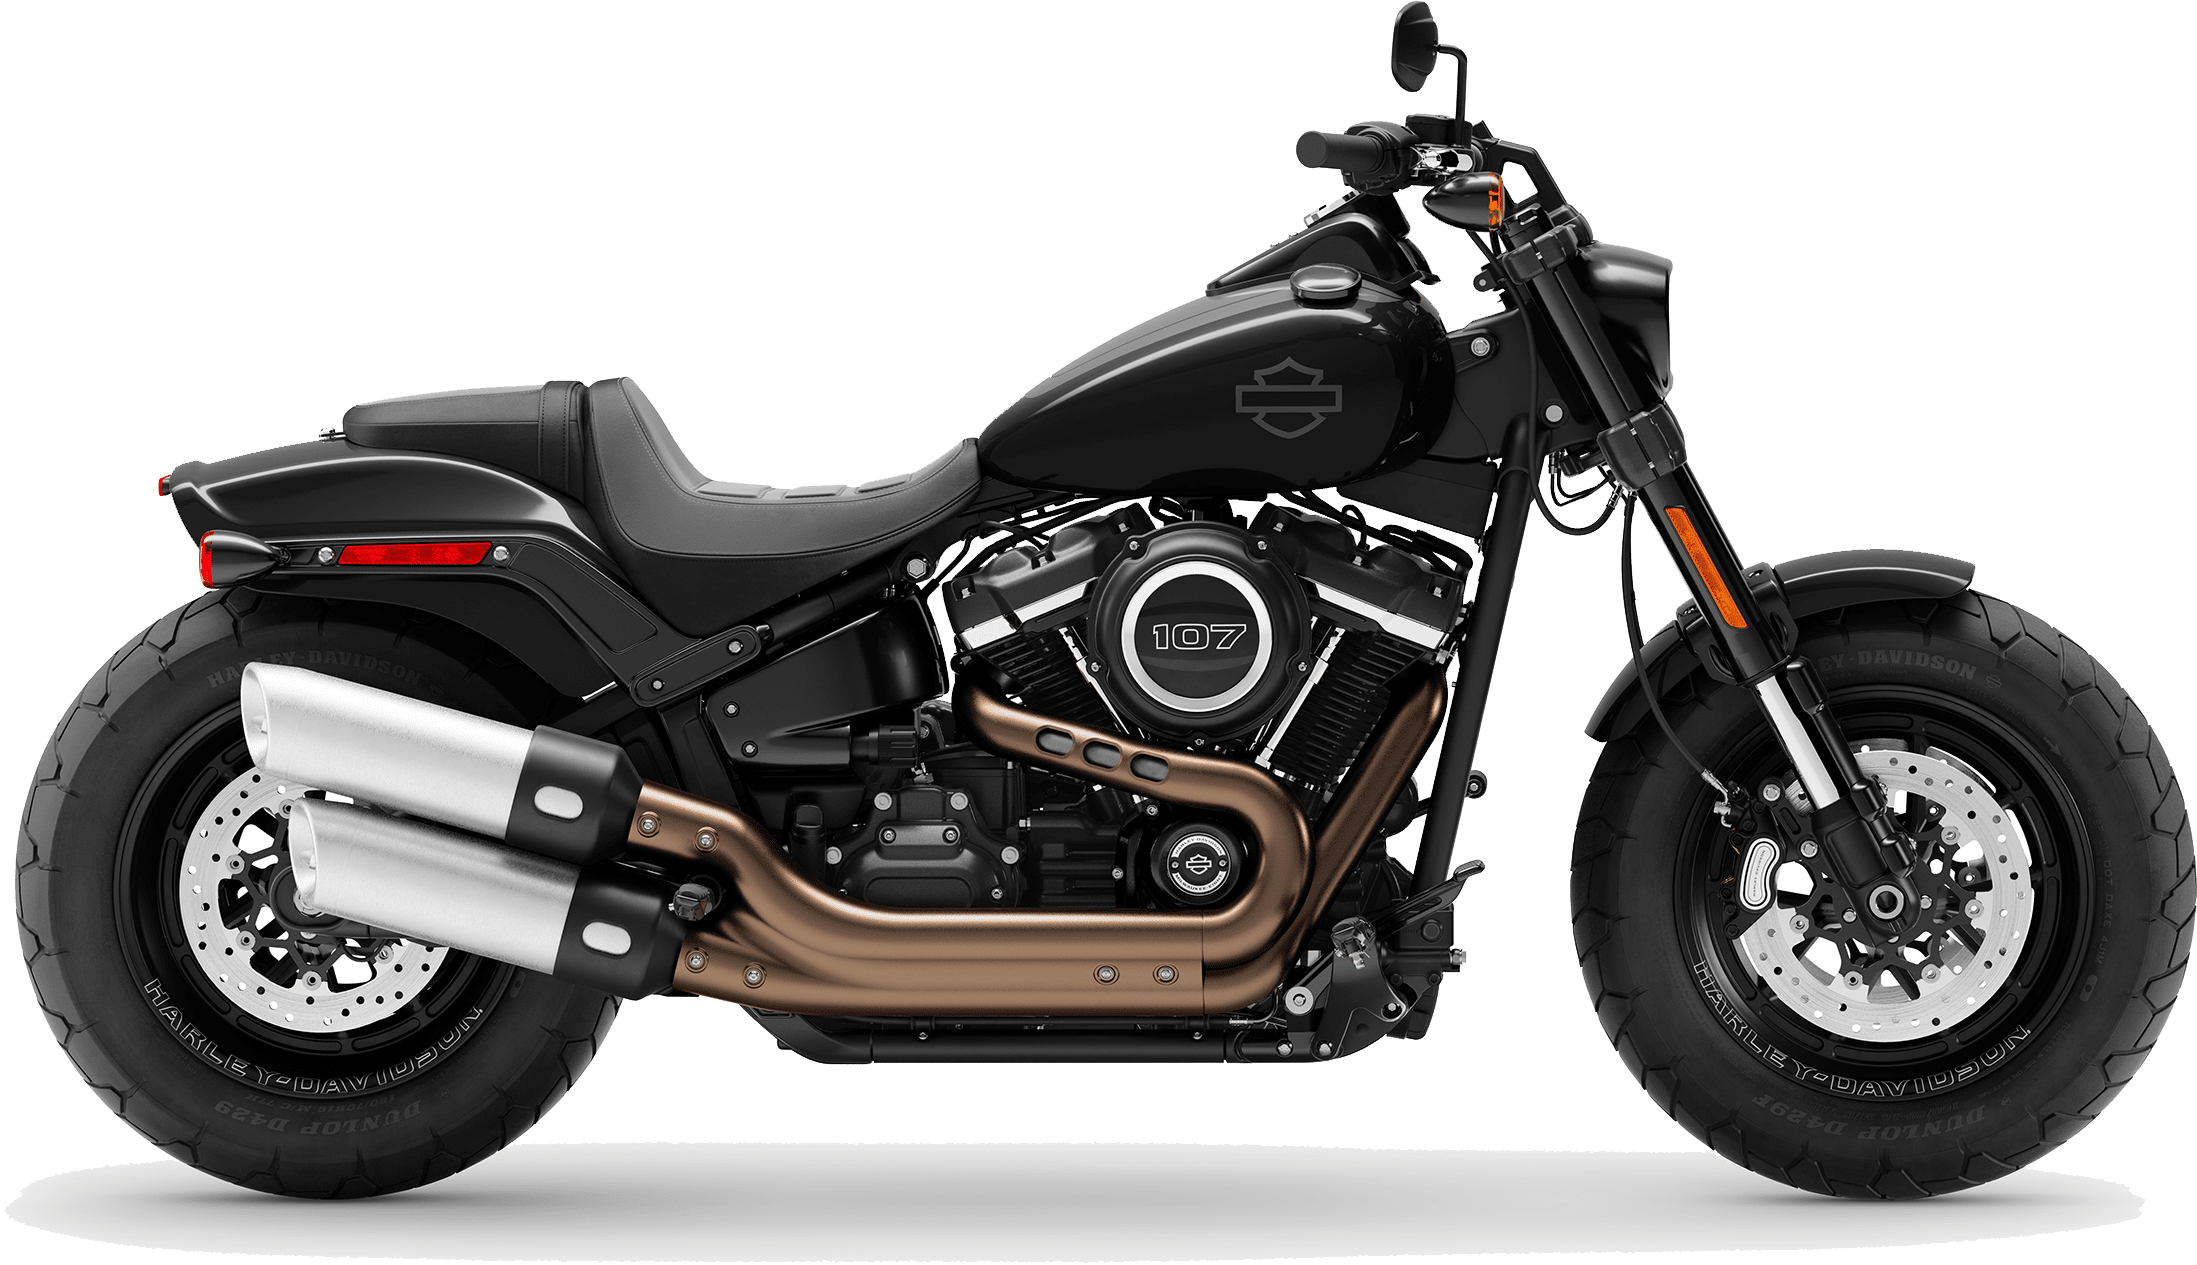 2019 Harley-Davidson Softail Fat Bob Vivid Black